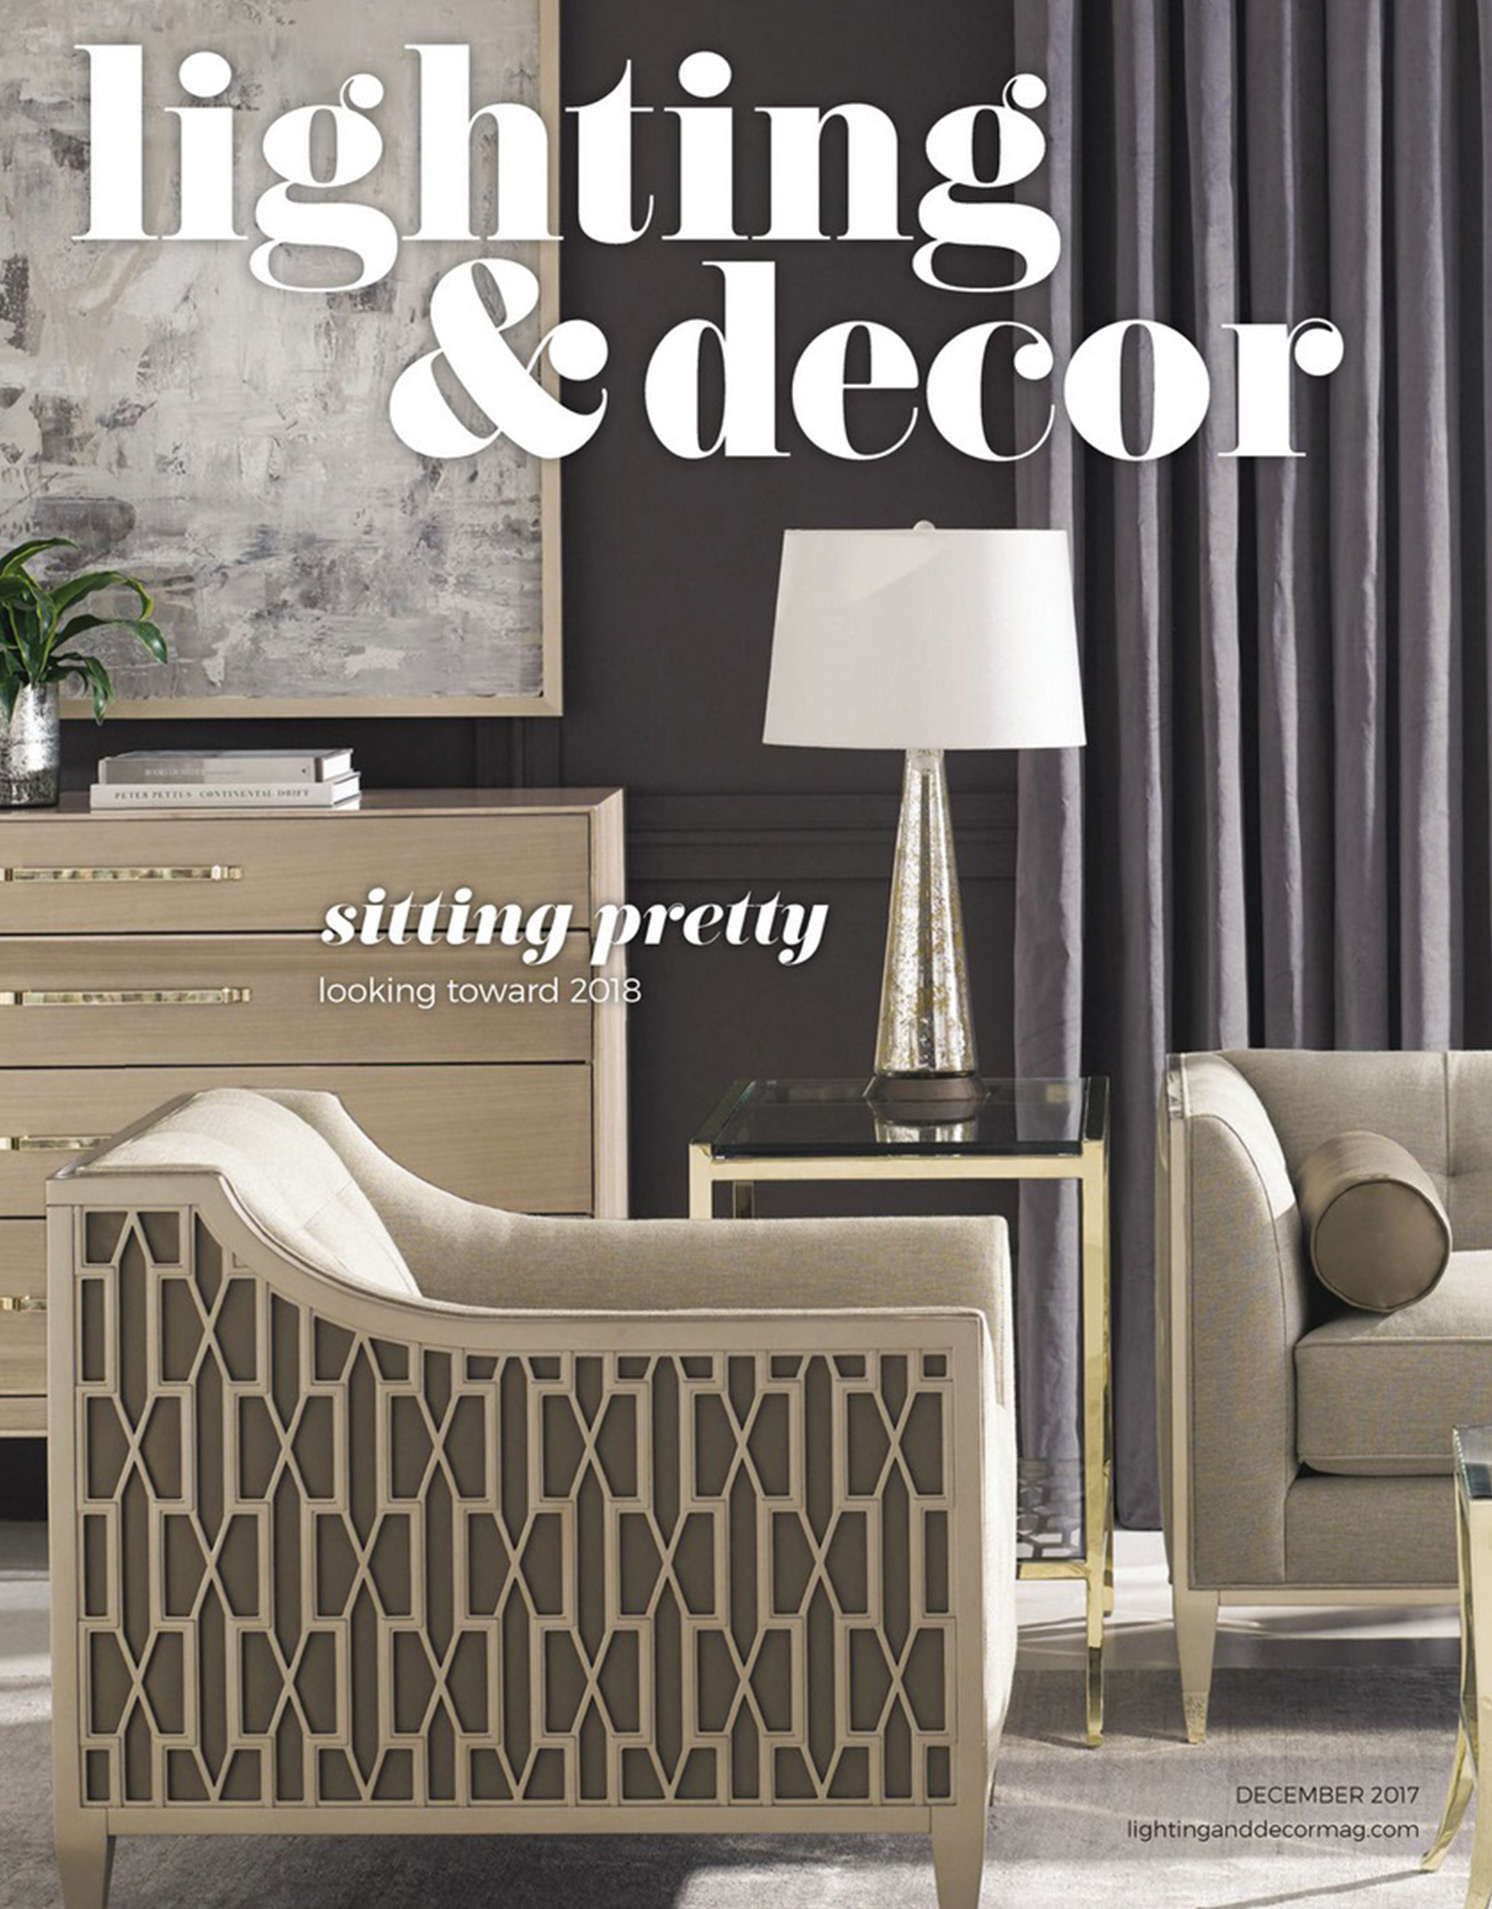 Lighting and Decor magazine cover